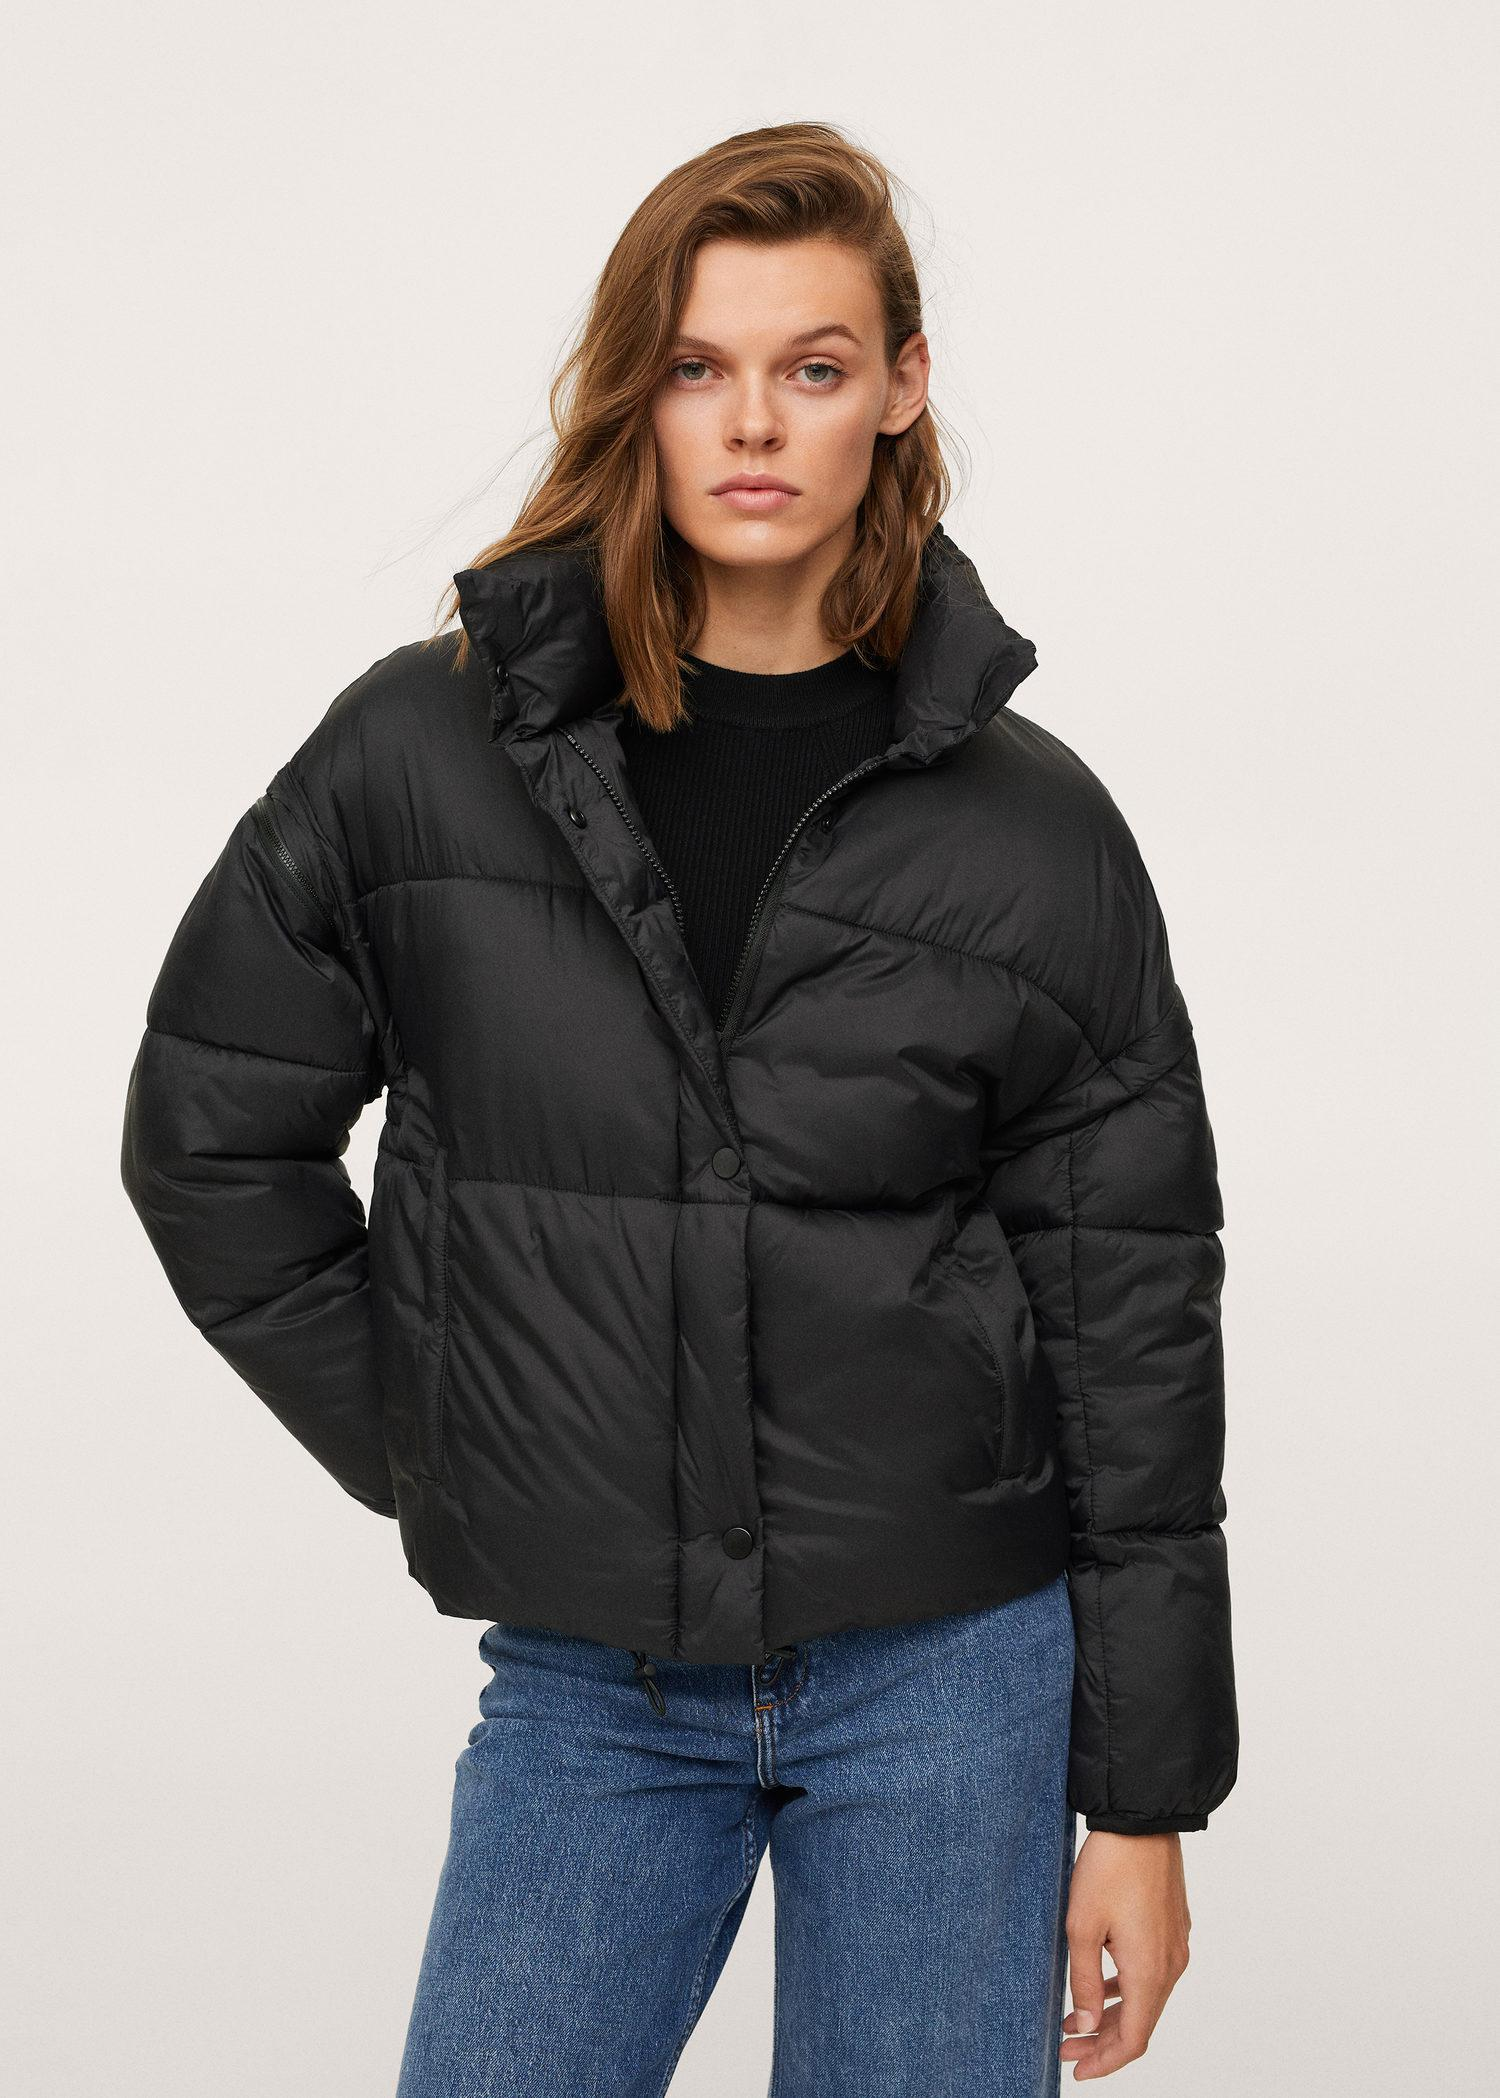 Padded jacket with detachable sleeves